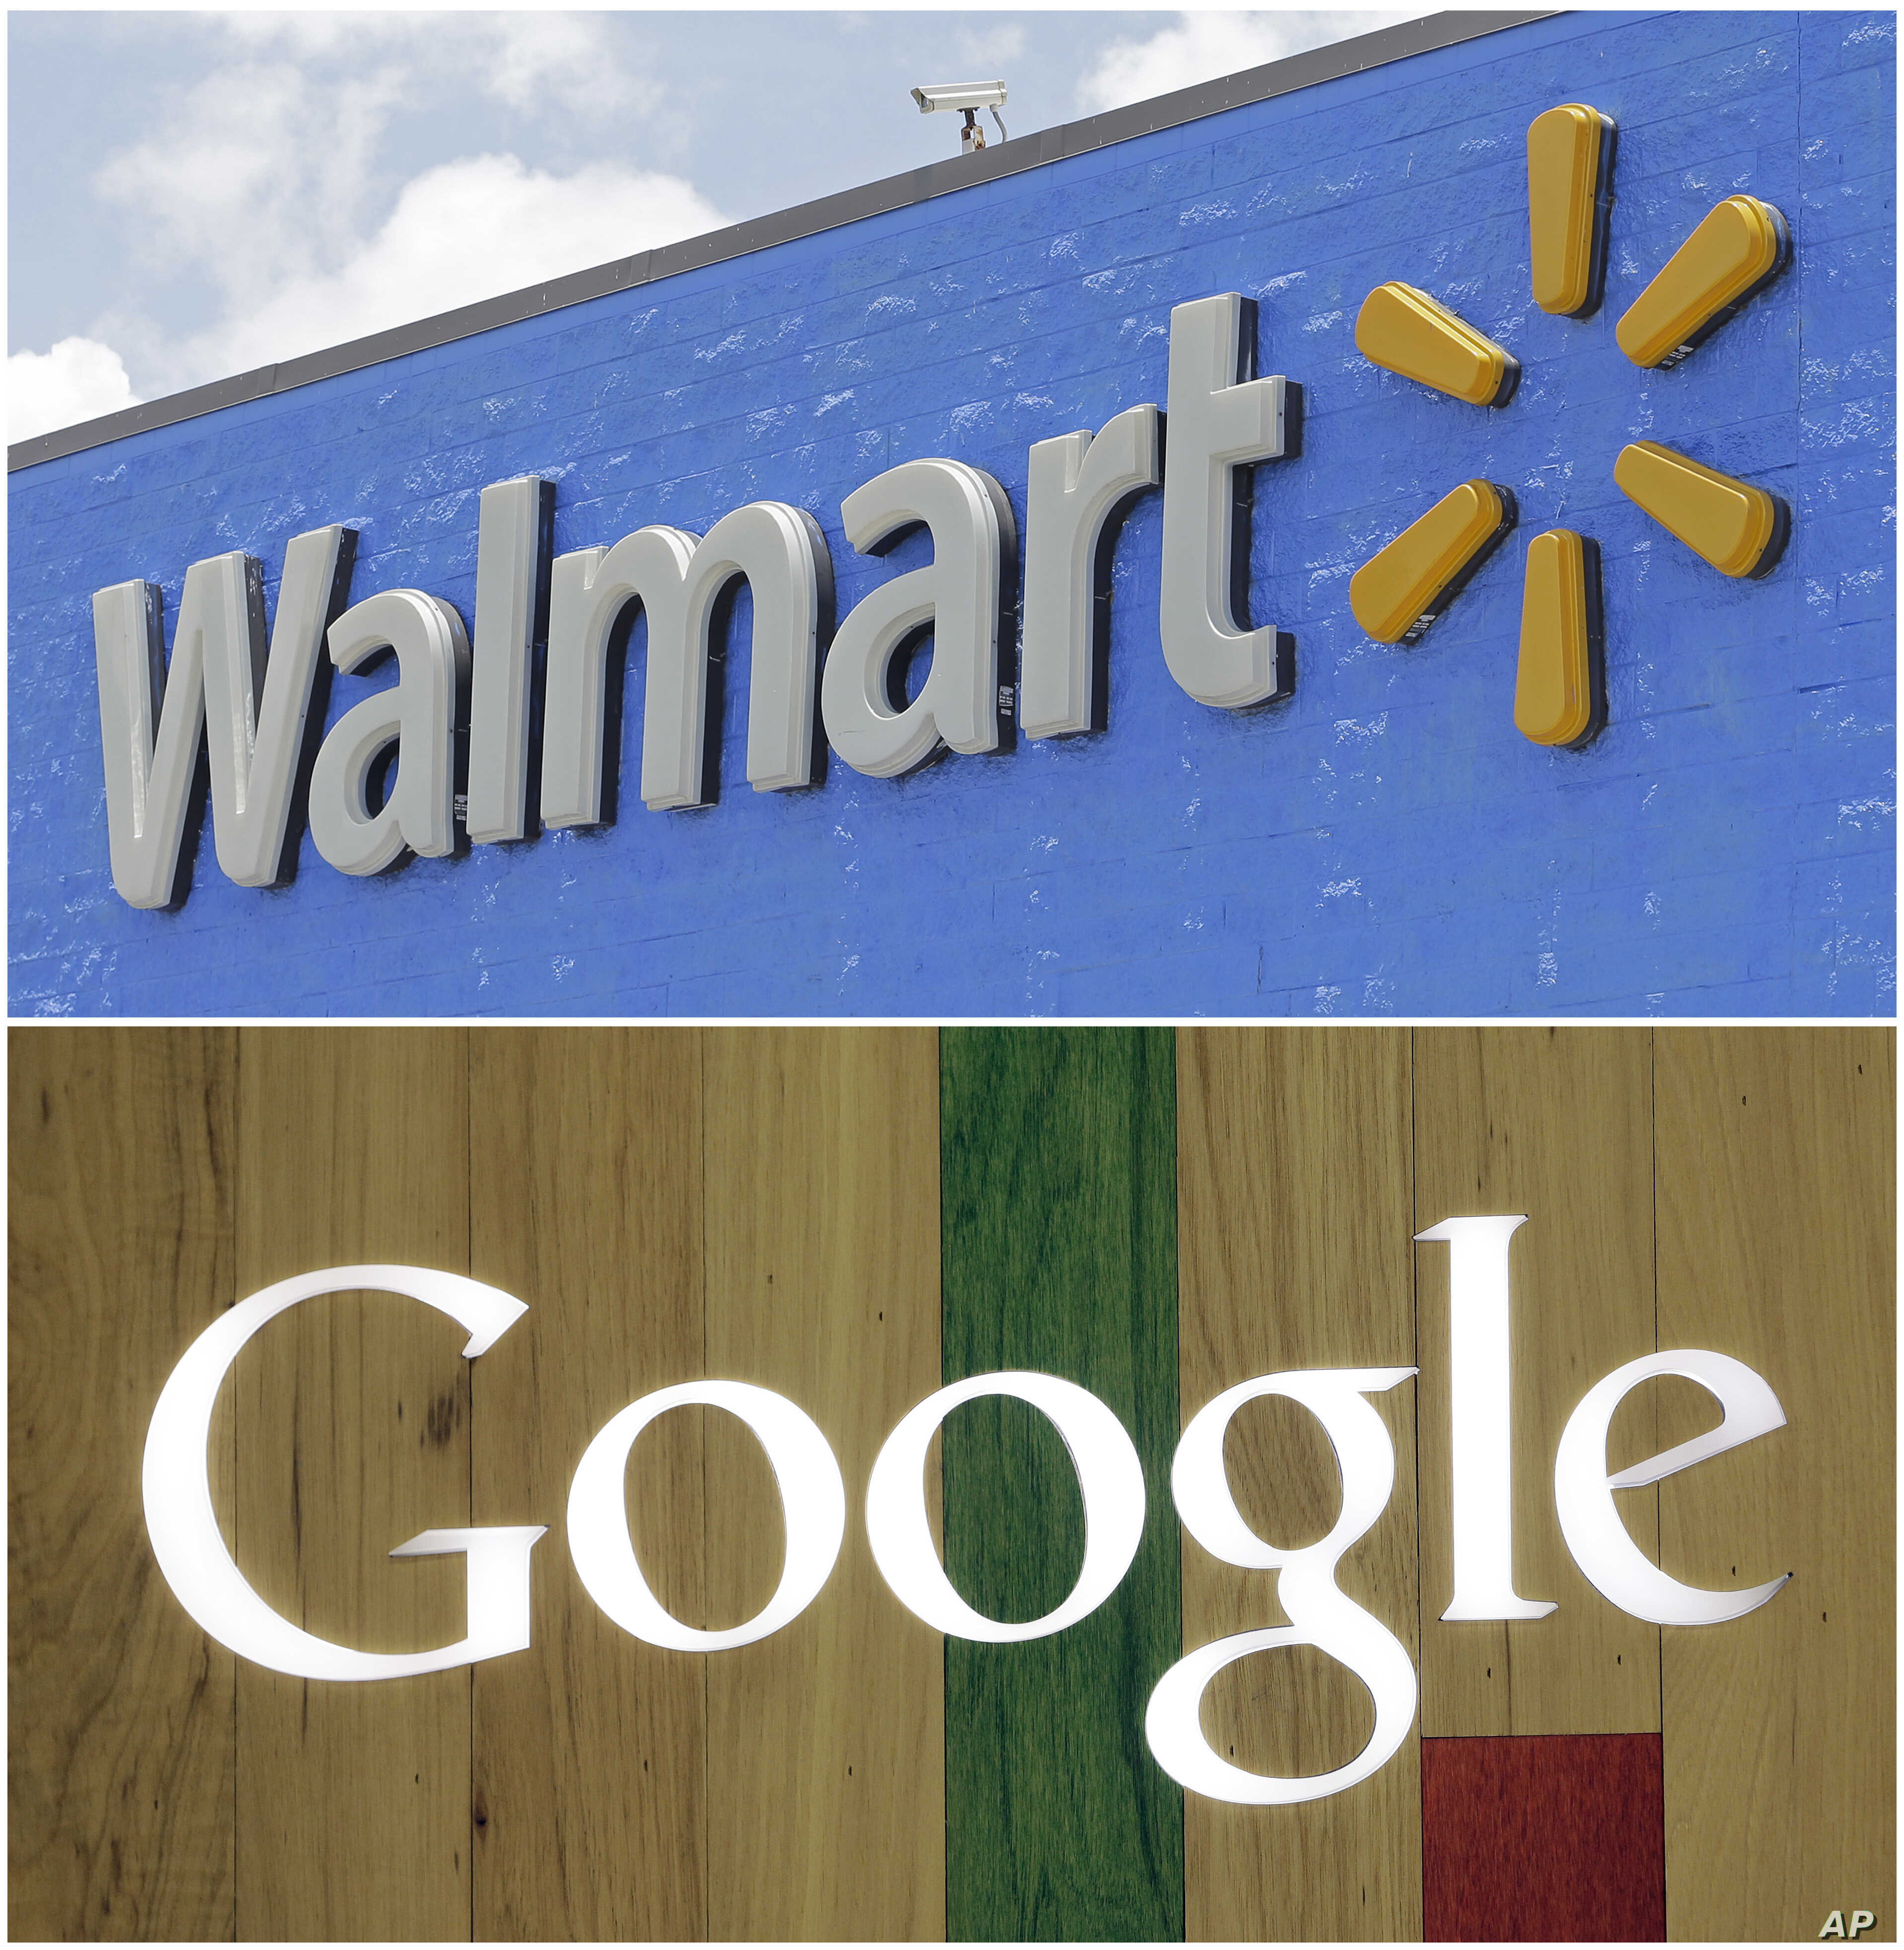 Walmart Teams Up With Google for Voice-activated Shopping